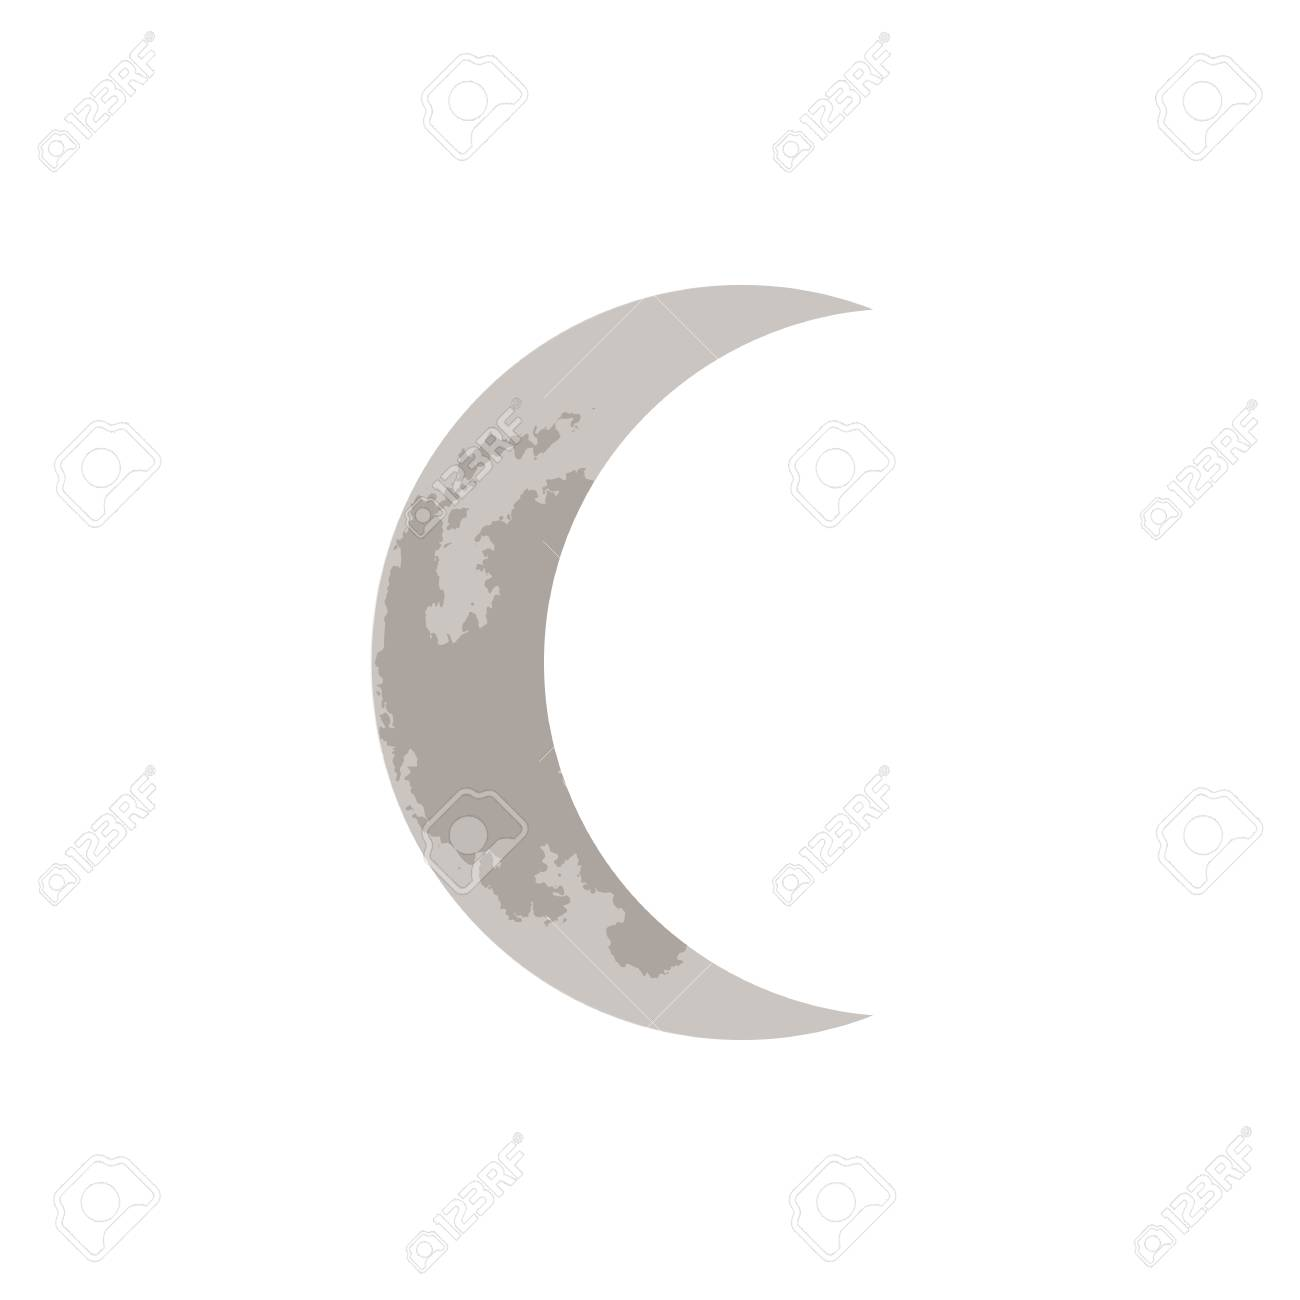 crescent moon vector illustration royalty free cliparts vectors and stock illustration image 92111360 123rf com